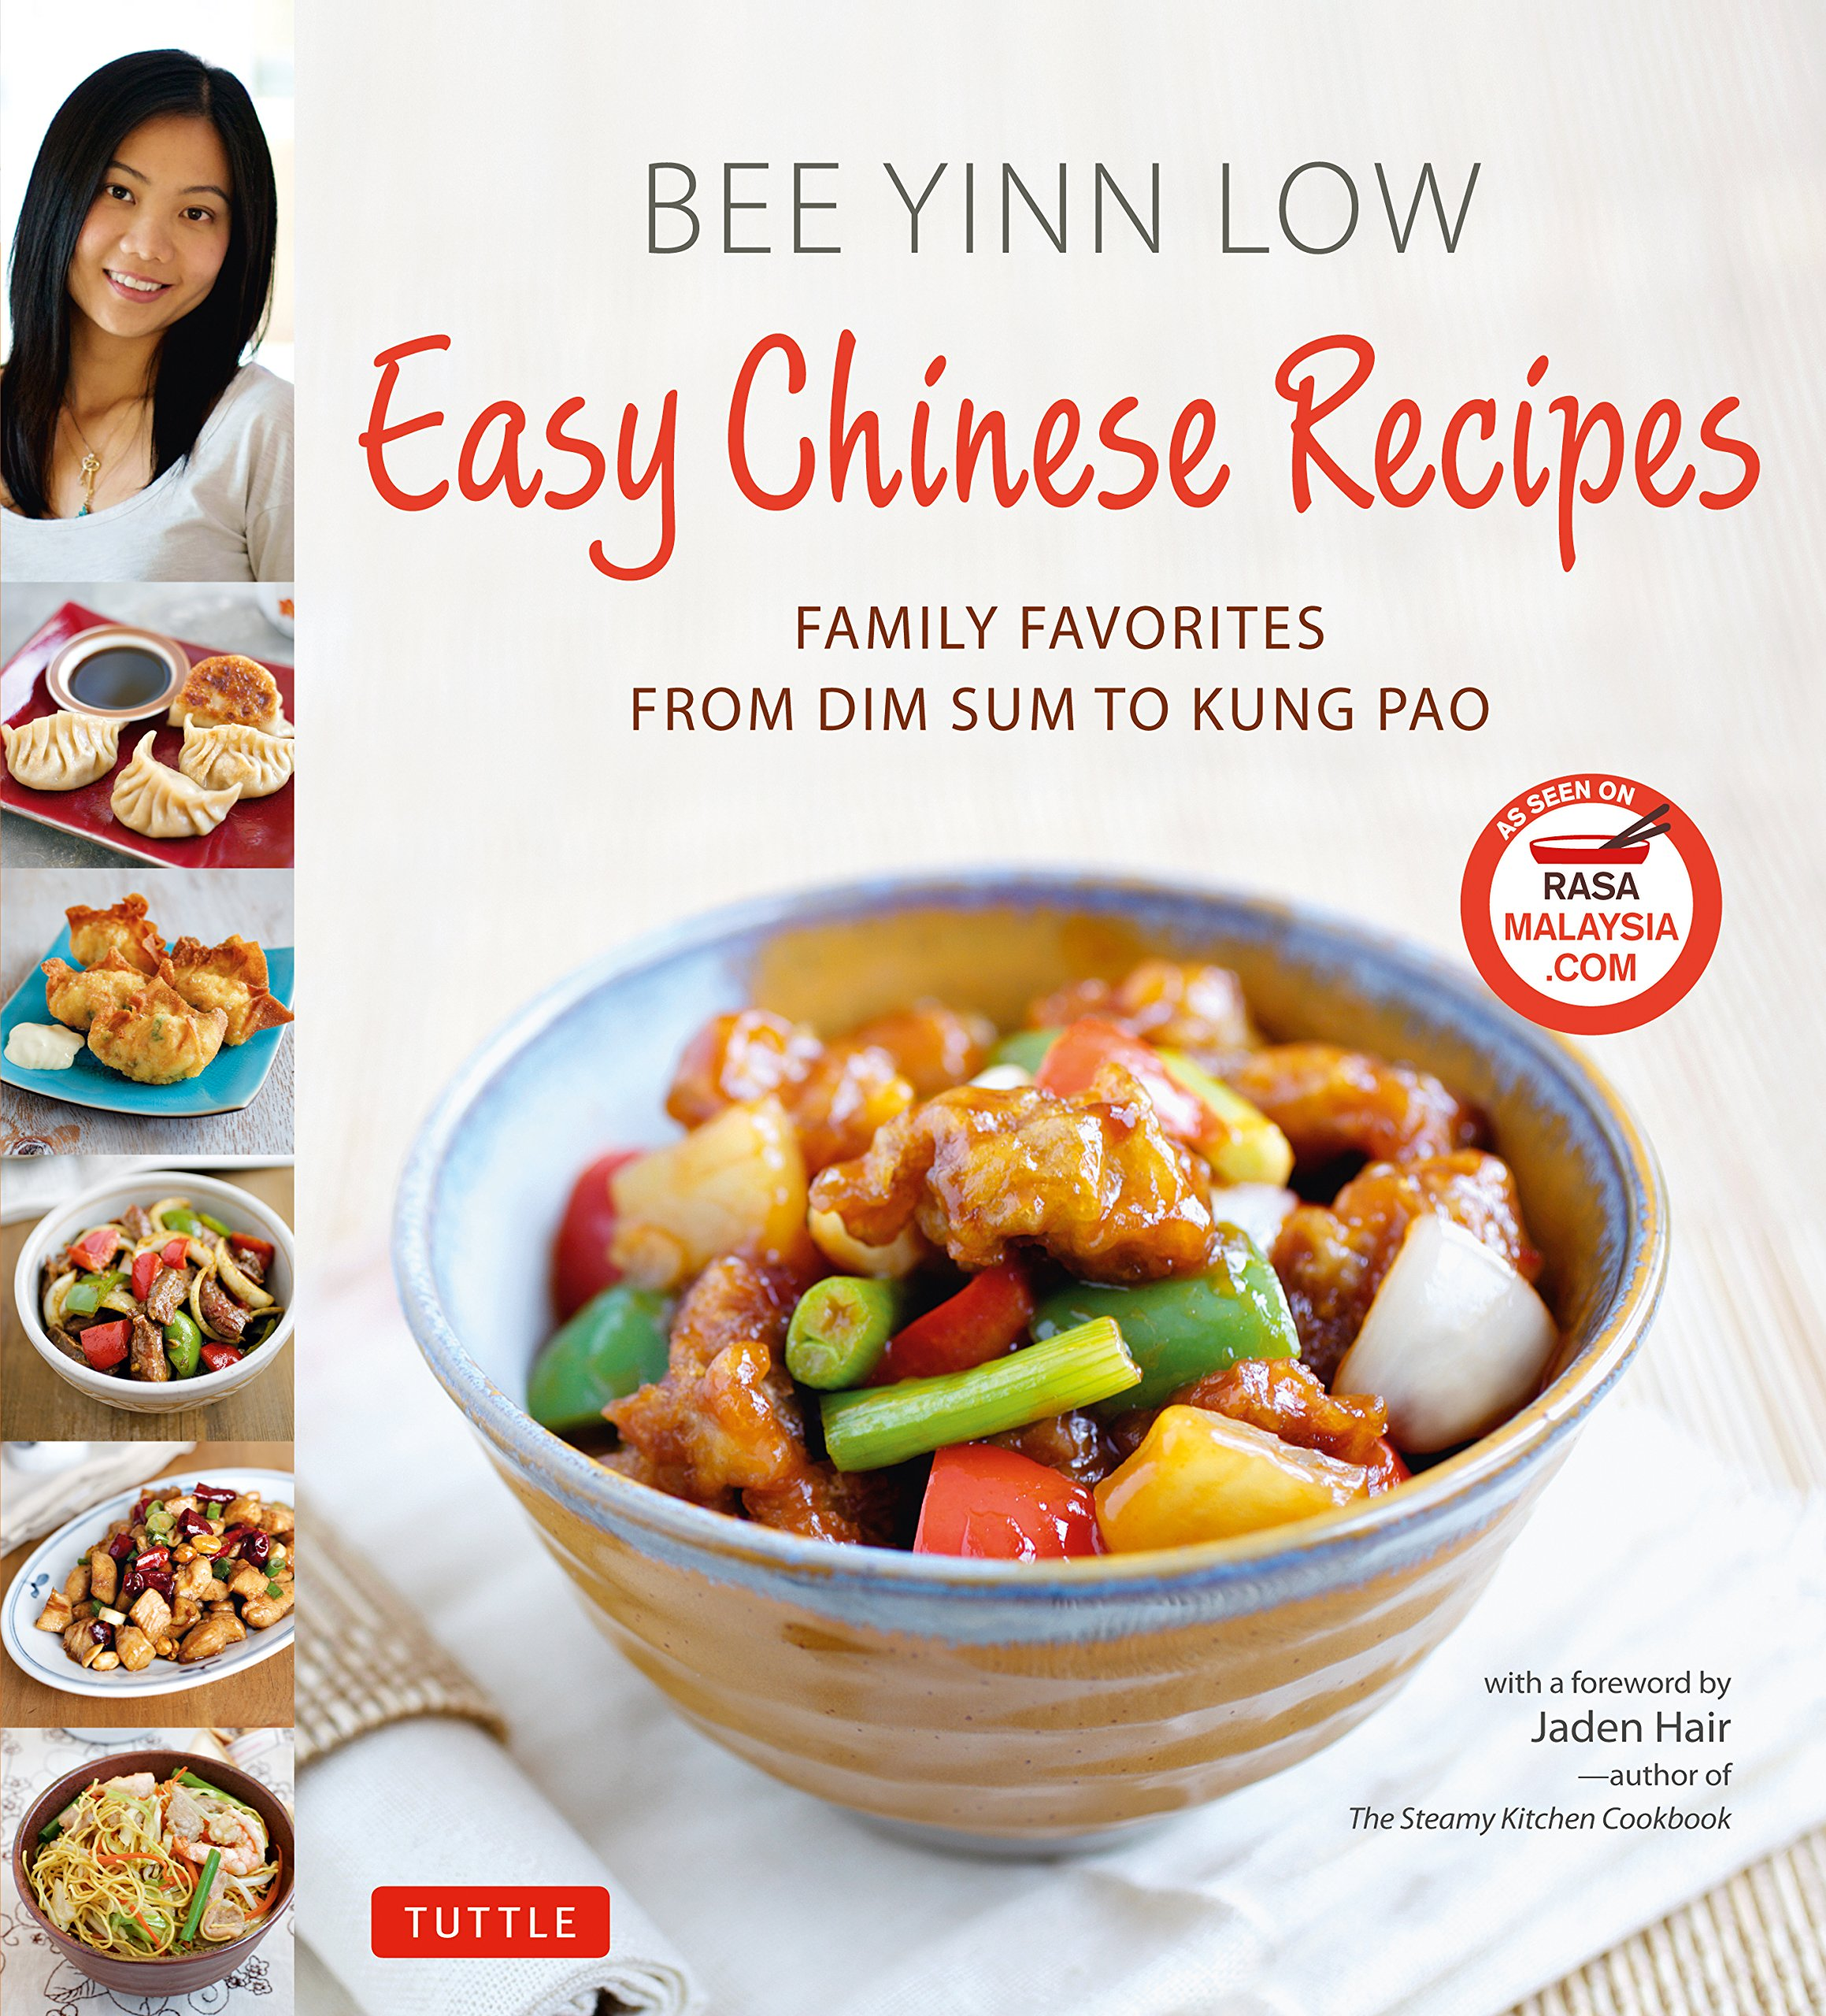 Easy chinese recipes family favorites from dim sum to kung pao bee easy chinese recipes family favorites from dim sum to kung pao bee yinn low jaden hair 8601300501789 amazon books forumfinder Choice Image